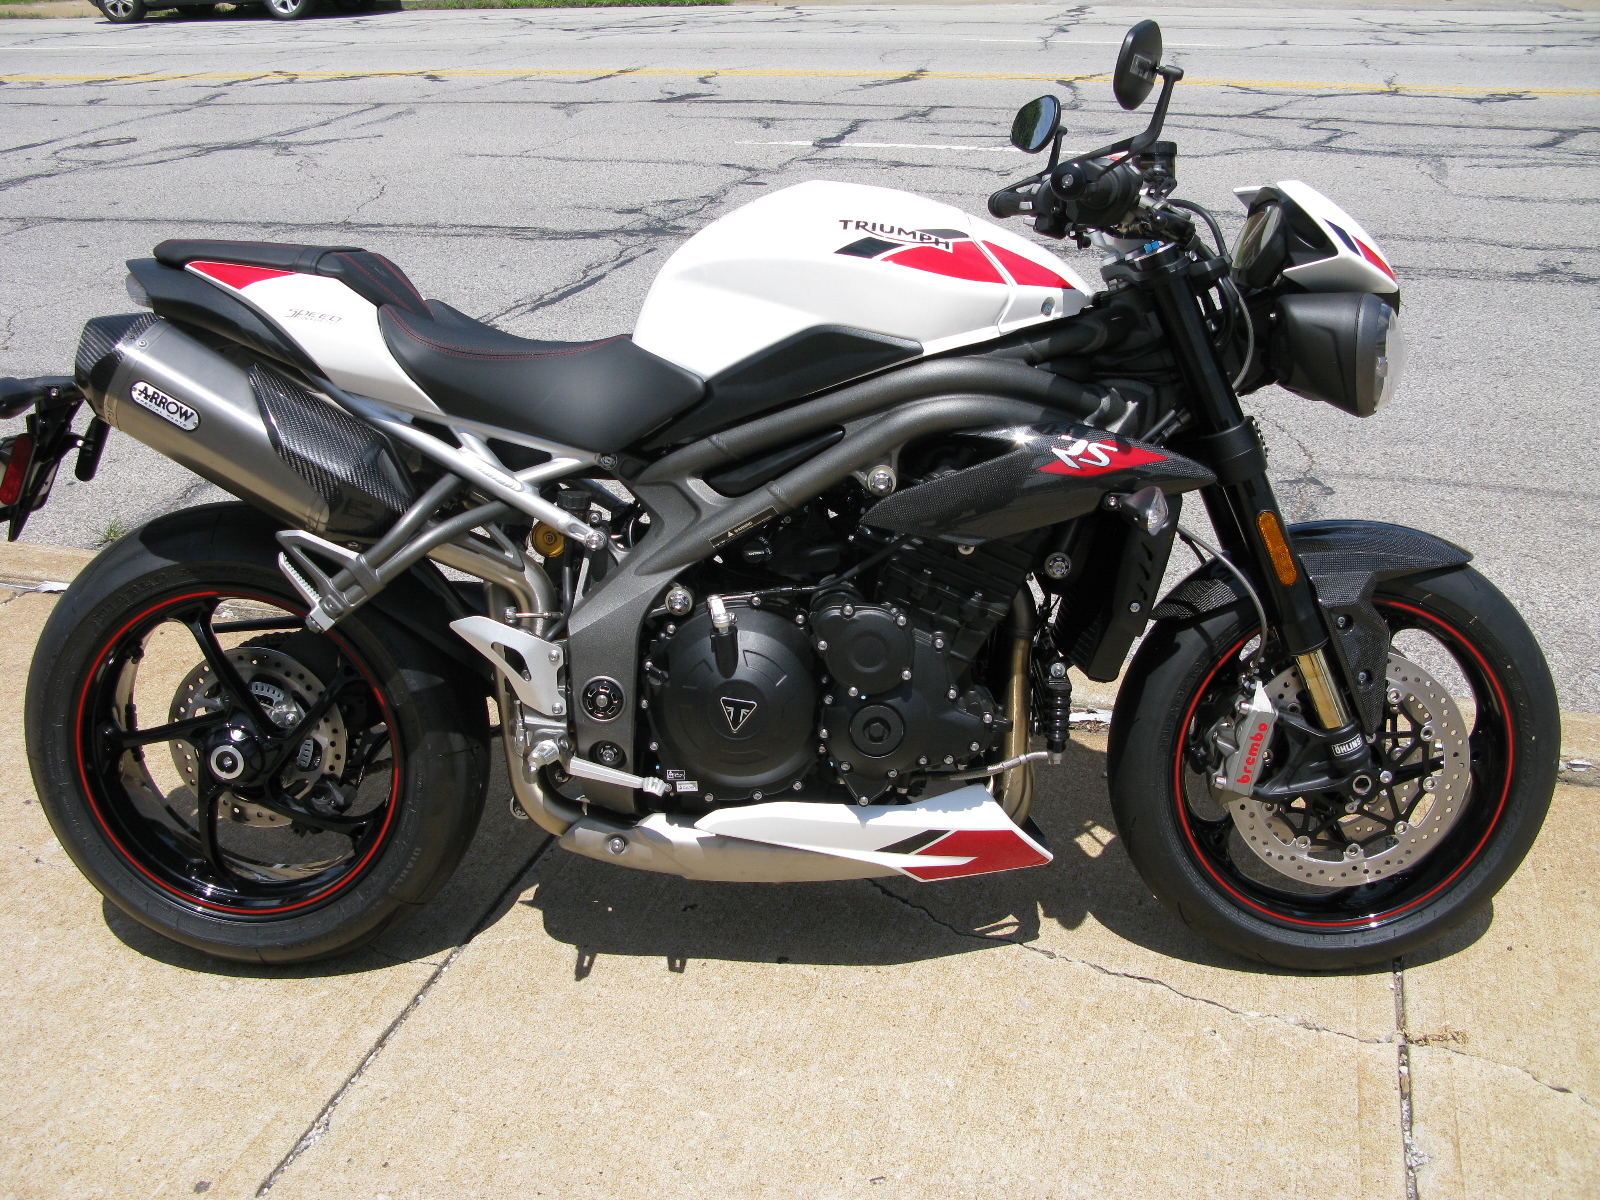 2020 Triumph Speed Triple Rs For Sale In Kansas City Mo Engle Motors Kansas City Mo 816 241 7554